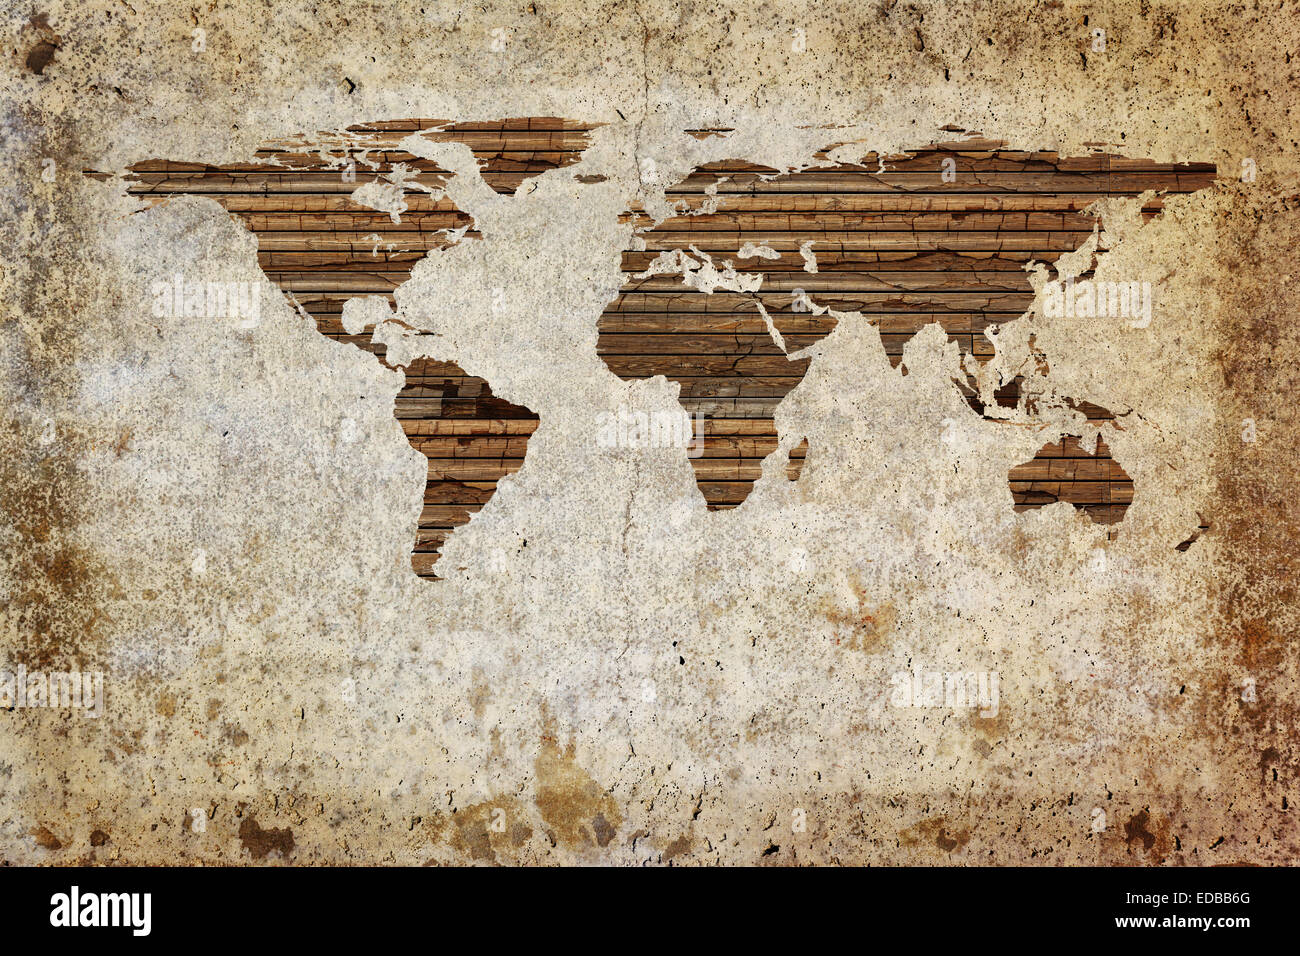 Grunge vintage wooden plank world map background Stock Photo ...